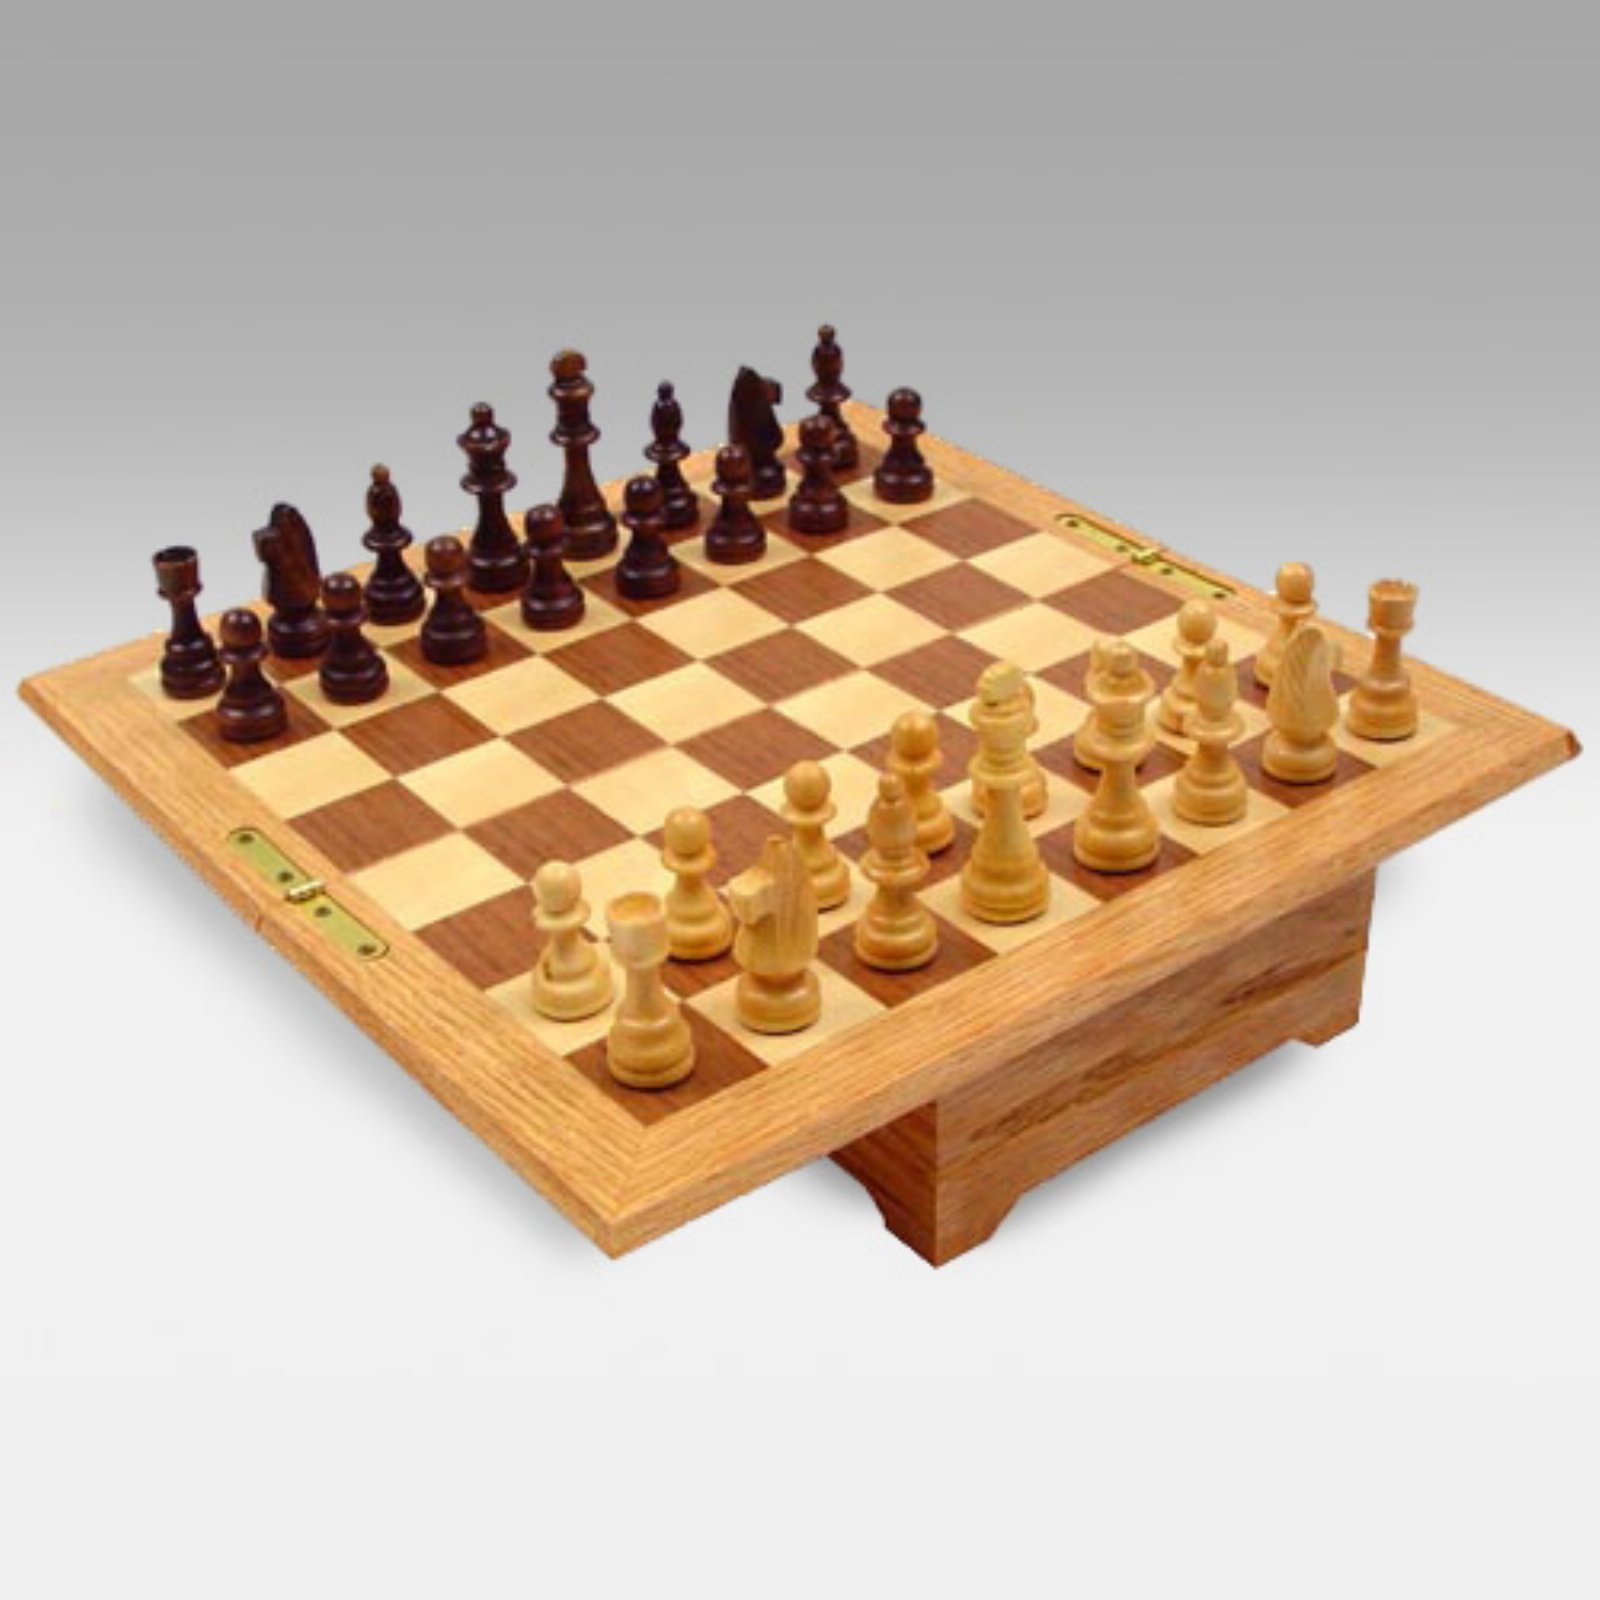 All American Chess & Checkers Set by Cambor Games